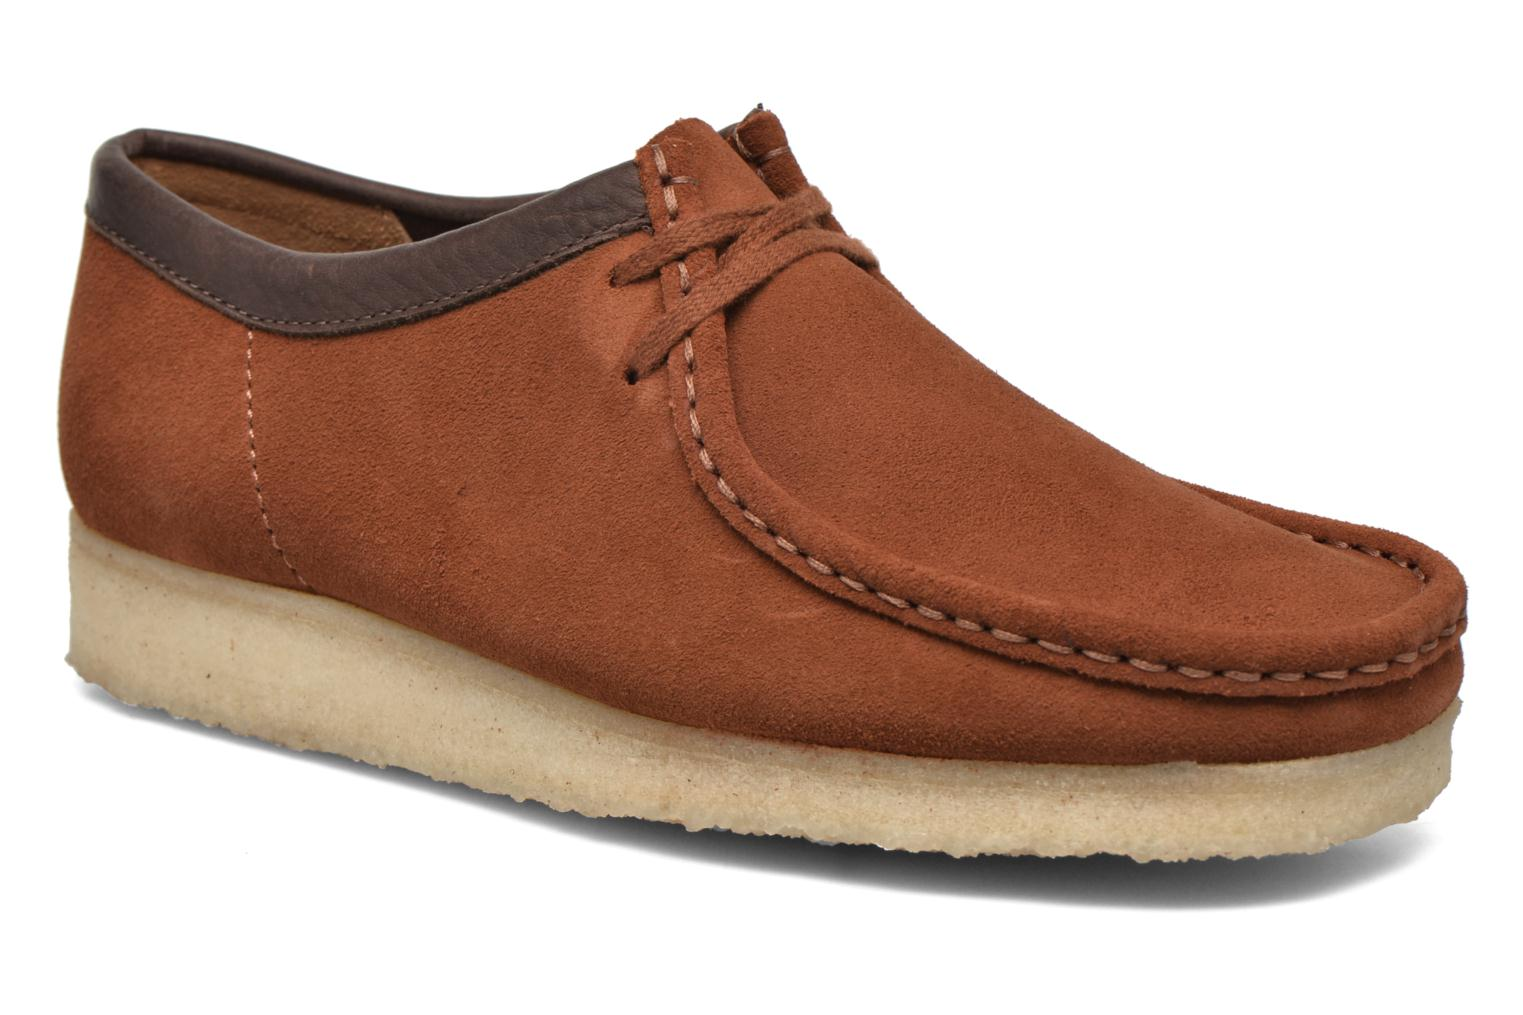 Wallabee M Dark tan suede